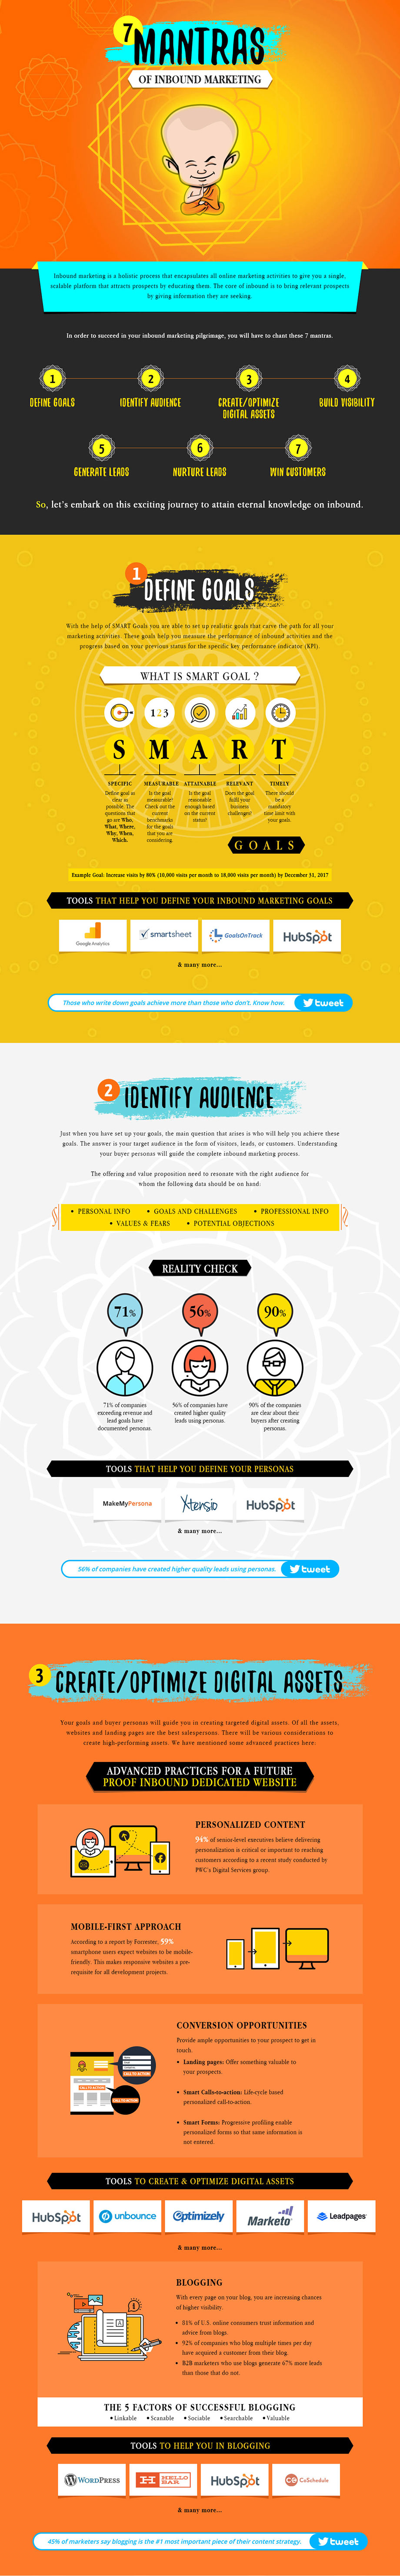 7 Mantras of Inbound Marketing (Infographic) - 1